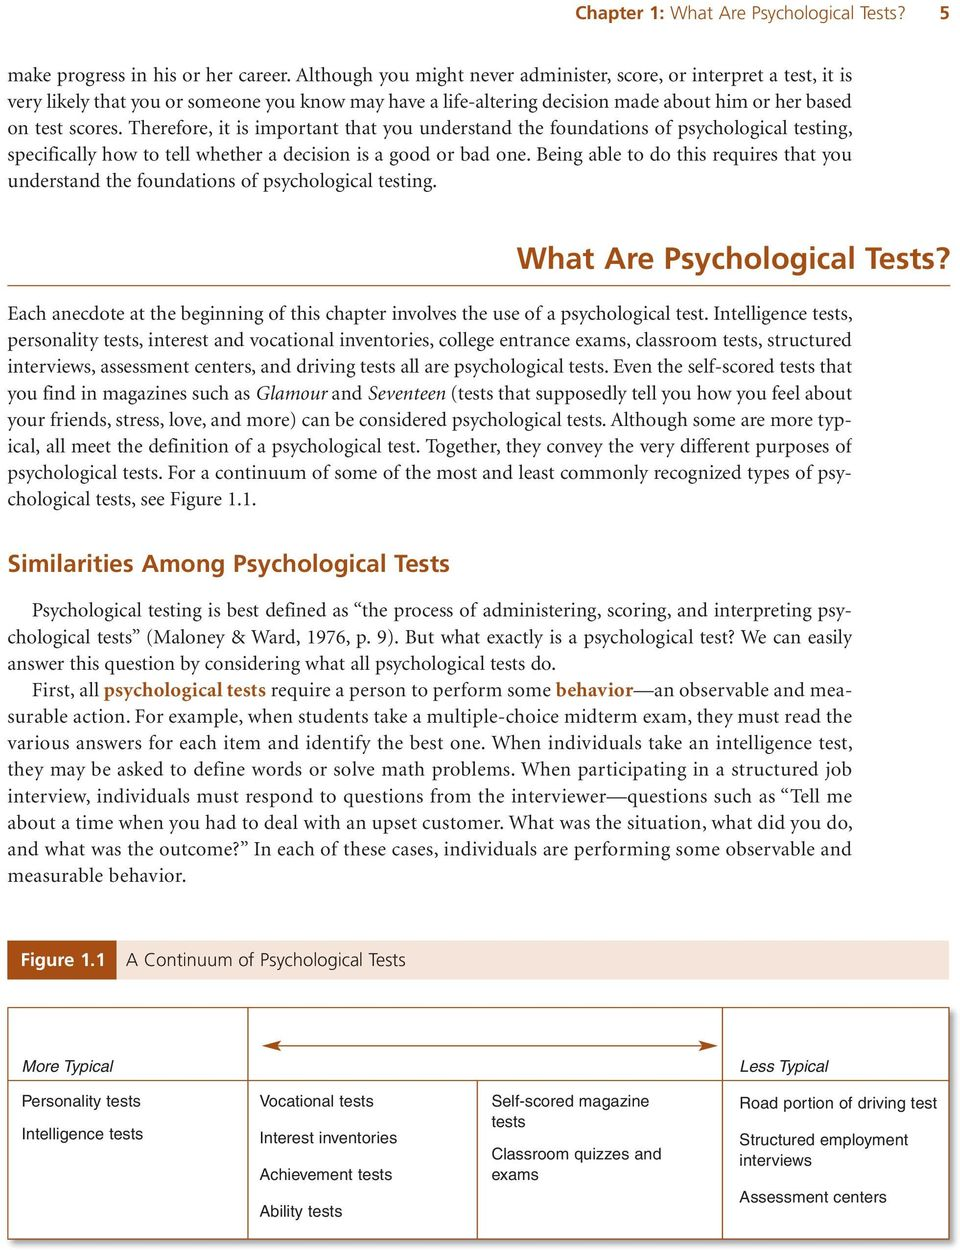 Therefore, it is important that you understand the foundations of psychological testing, specifically how to tell whether a decision is a good or bad one.